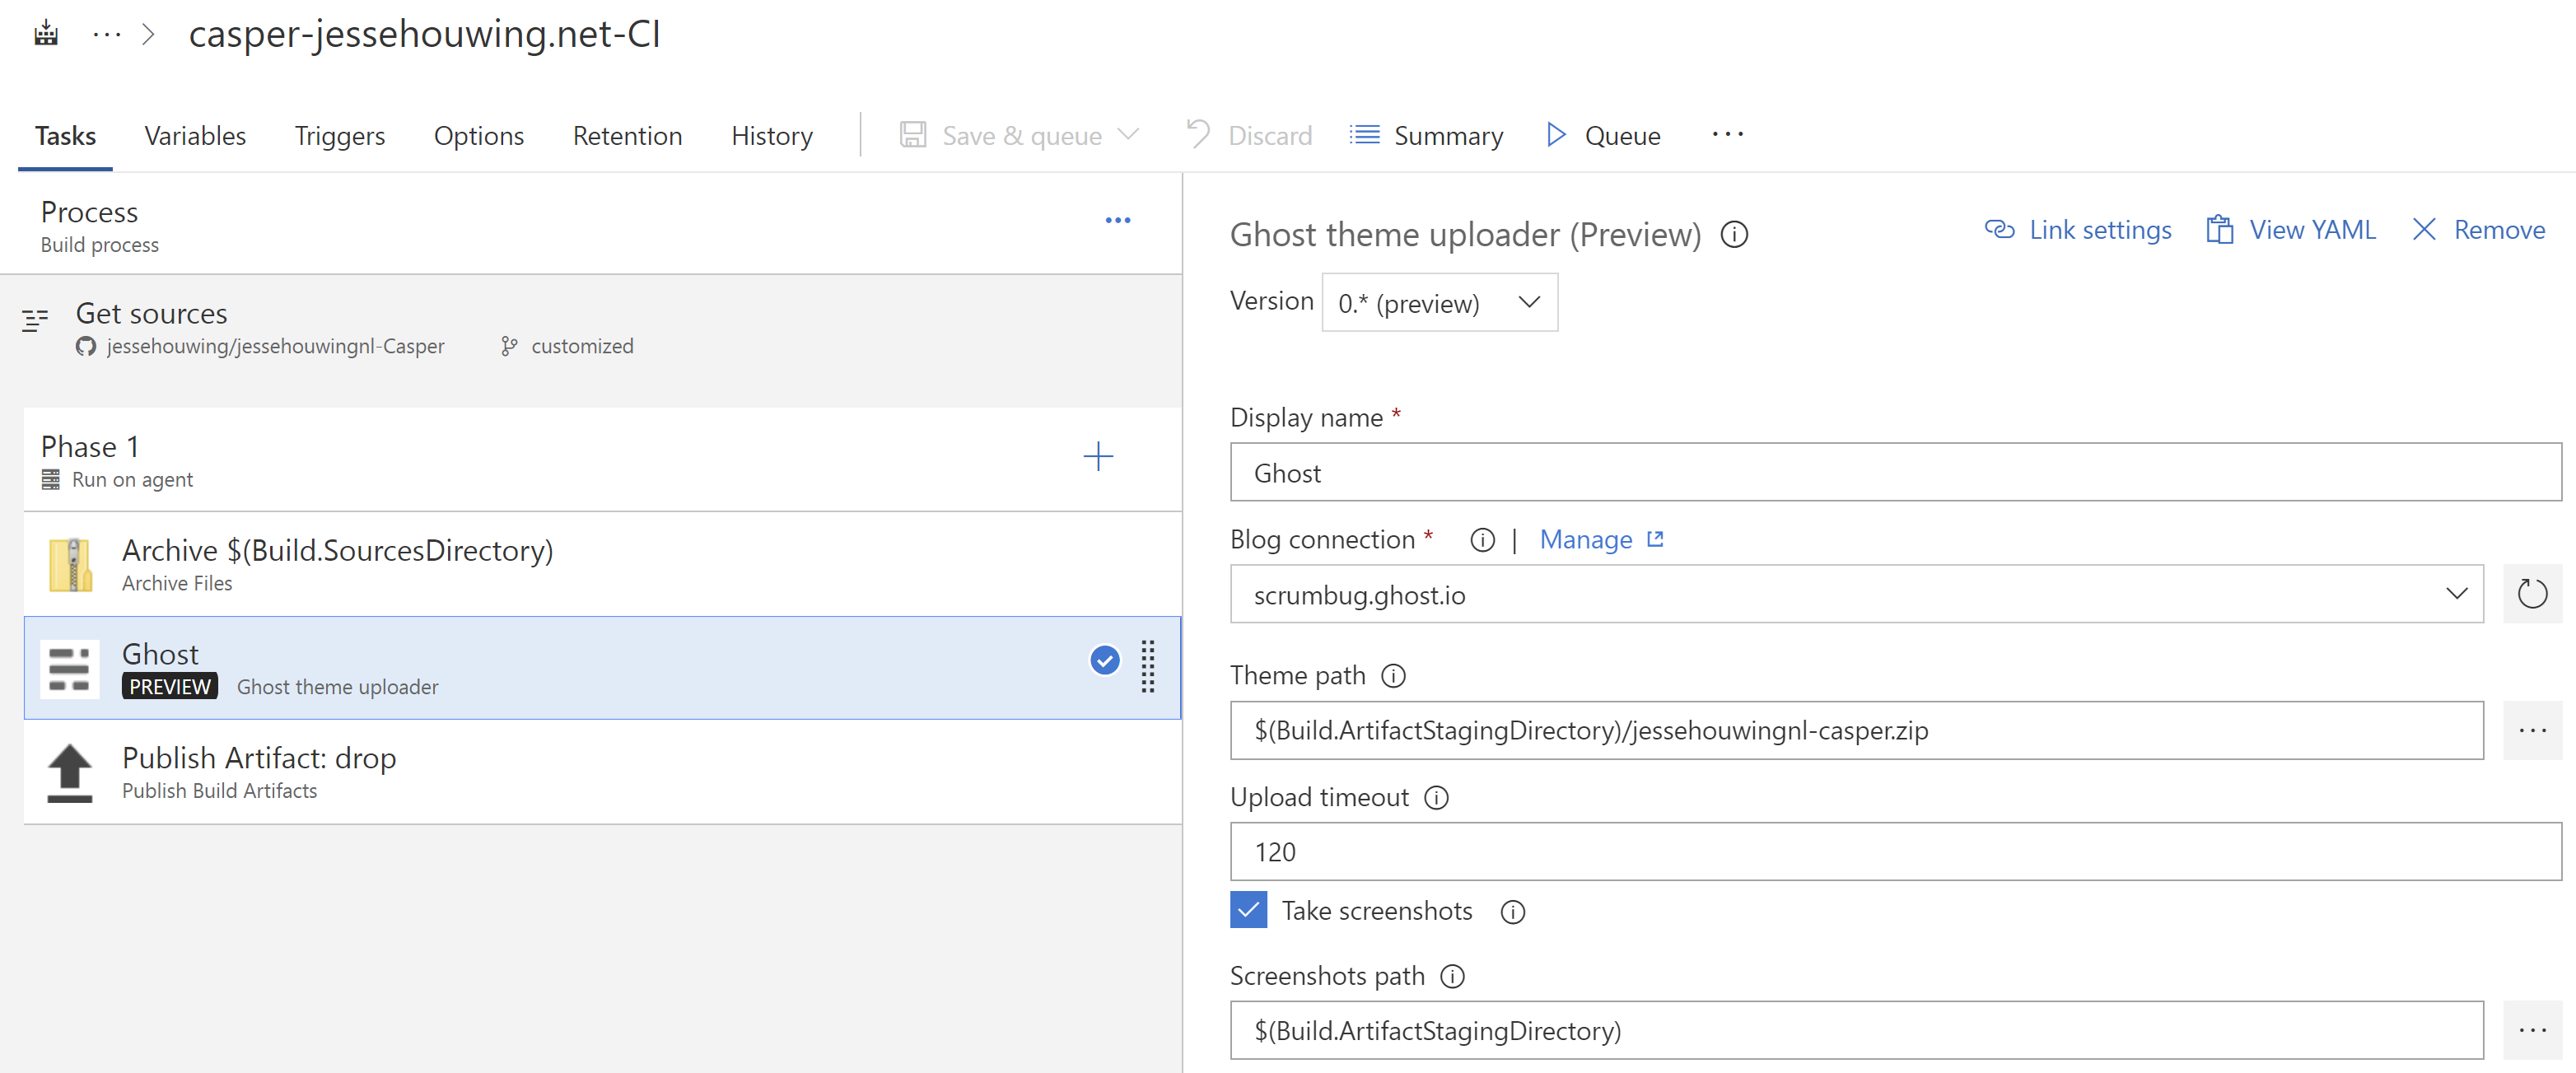 Continuous Delivery of customized Ghost themes using VSTS